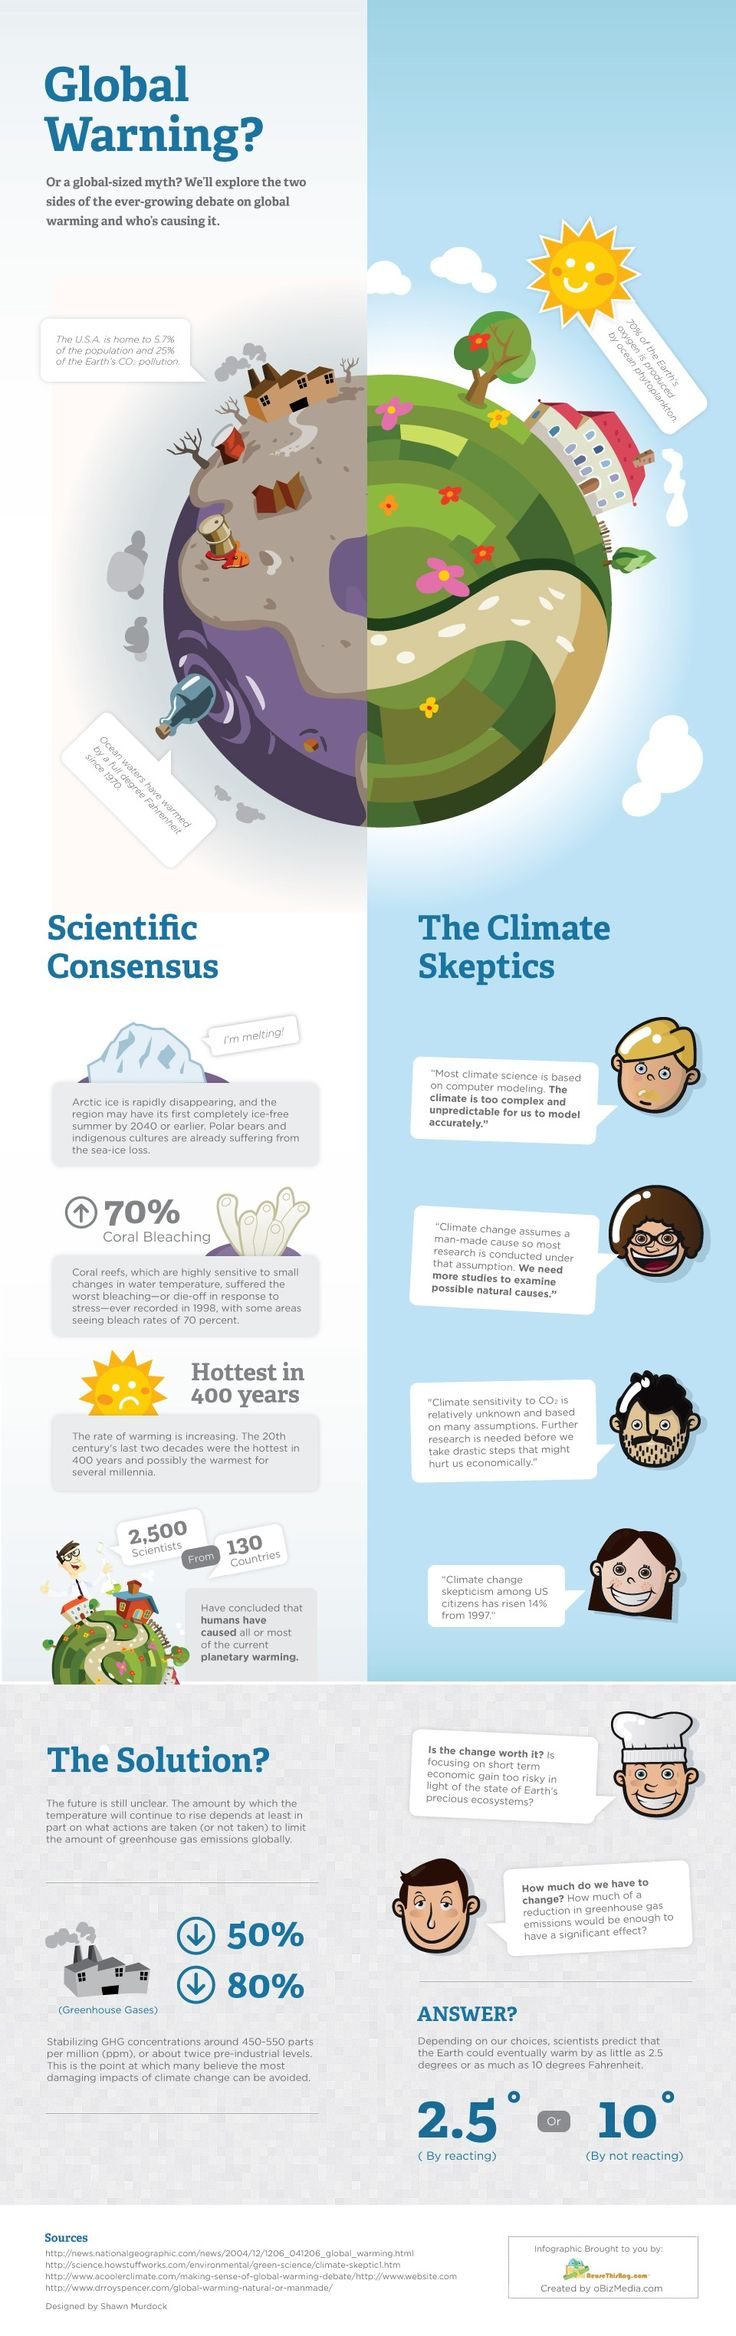 best ideas about global warming poster global the poster will help you to make your own conclusion about global warming